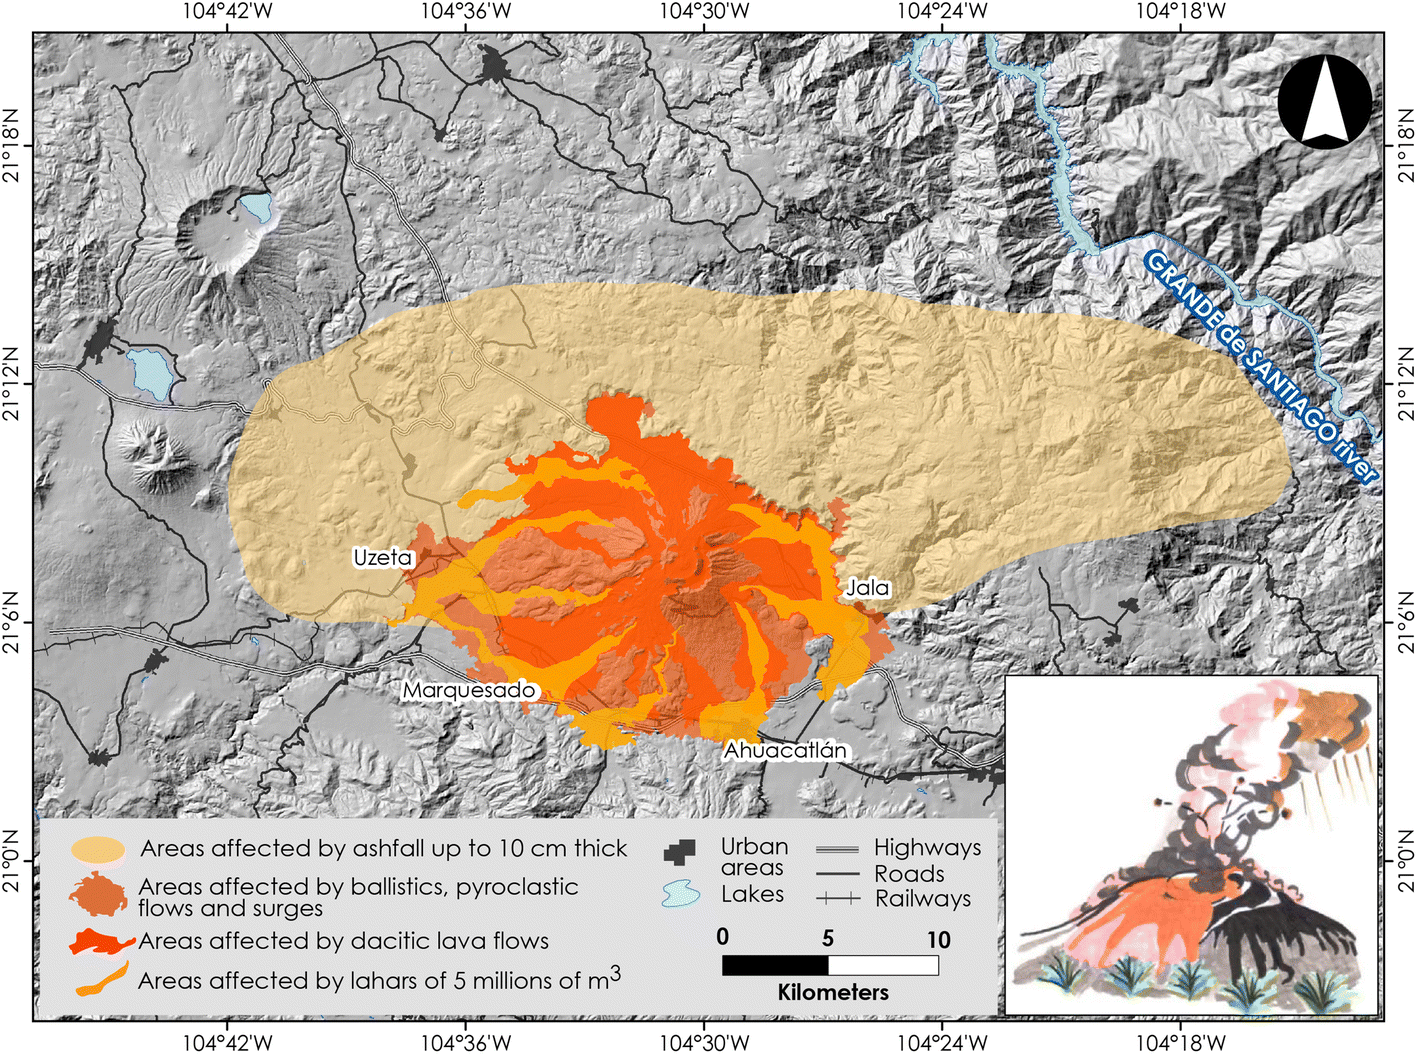 Ceboruco hazard map: part II—modeling volcanic phenomena and